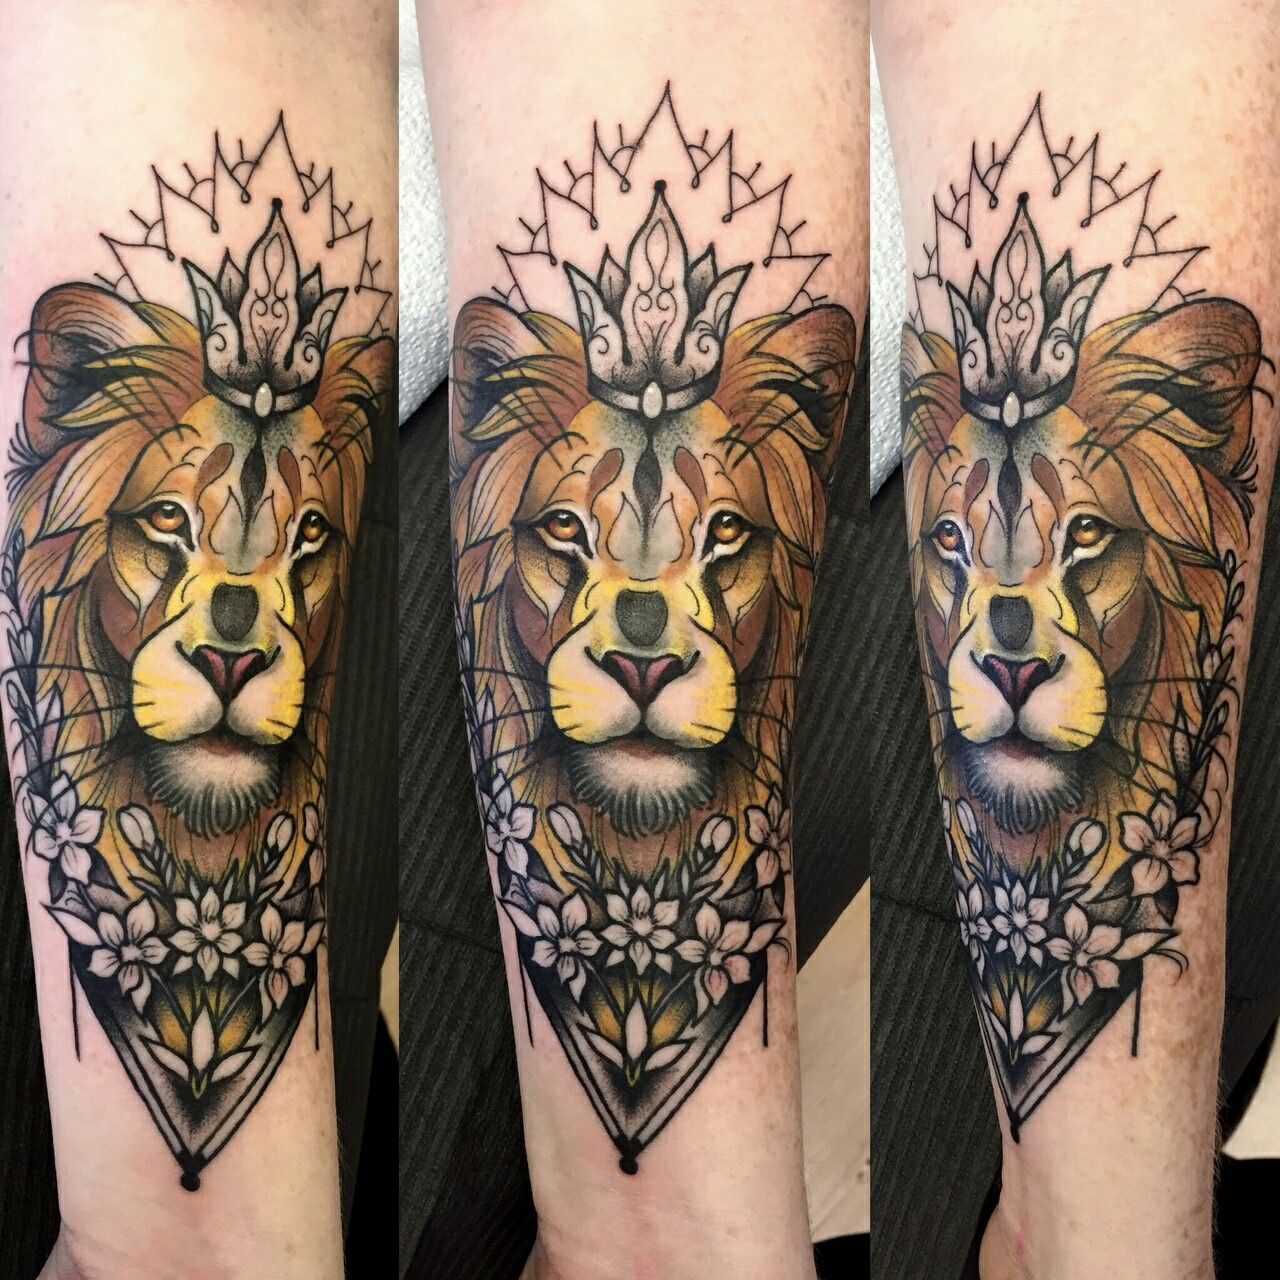 Lion Tattoo With Crown And Flowers Tattooist Jim Warf Shop Elizabeth St Tattoo Gallery Riverside Ca Completely Trendy Tattoos Tattoos Inspirational Tattoos